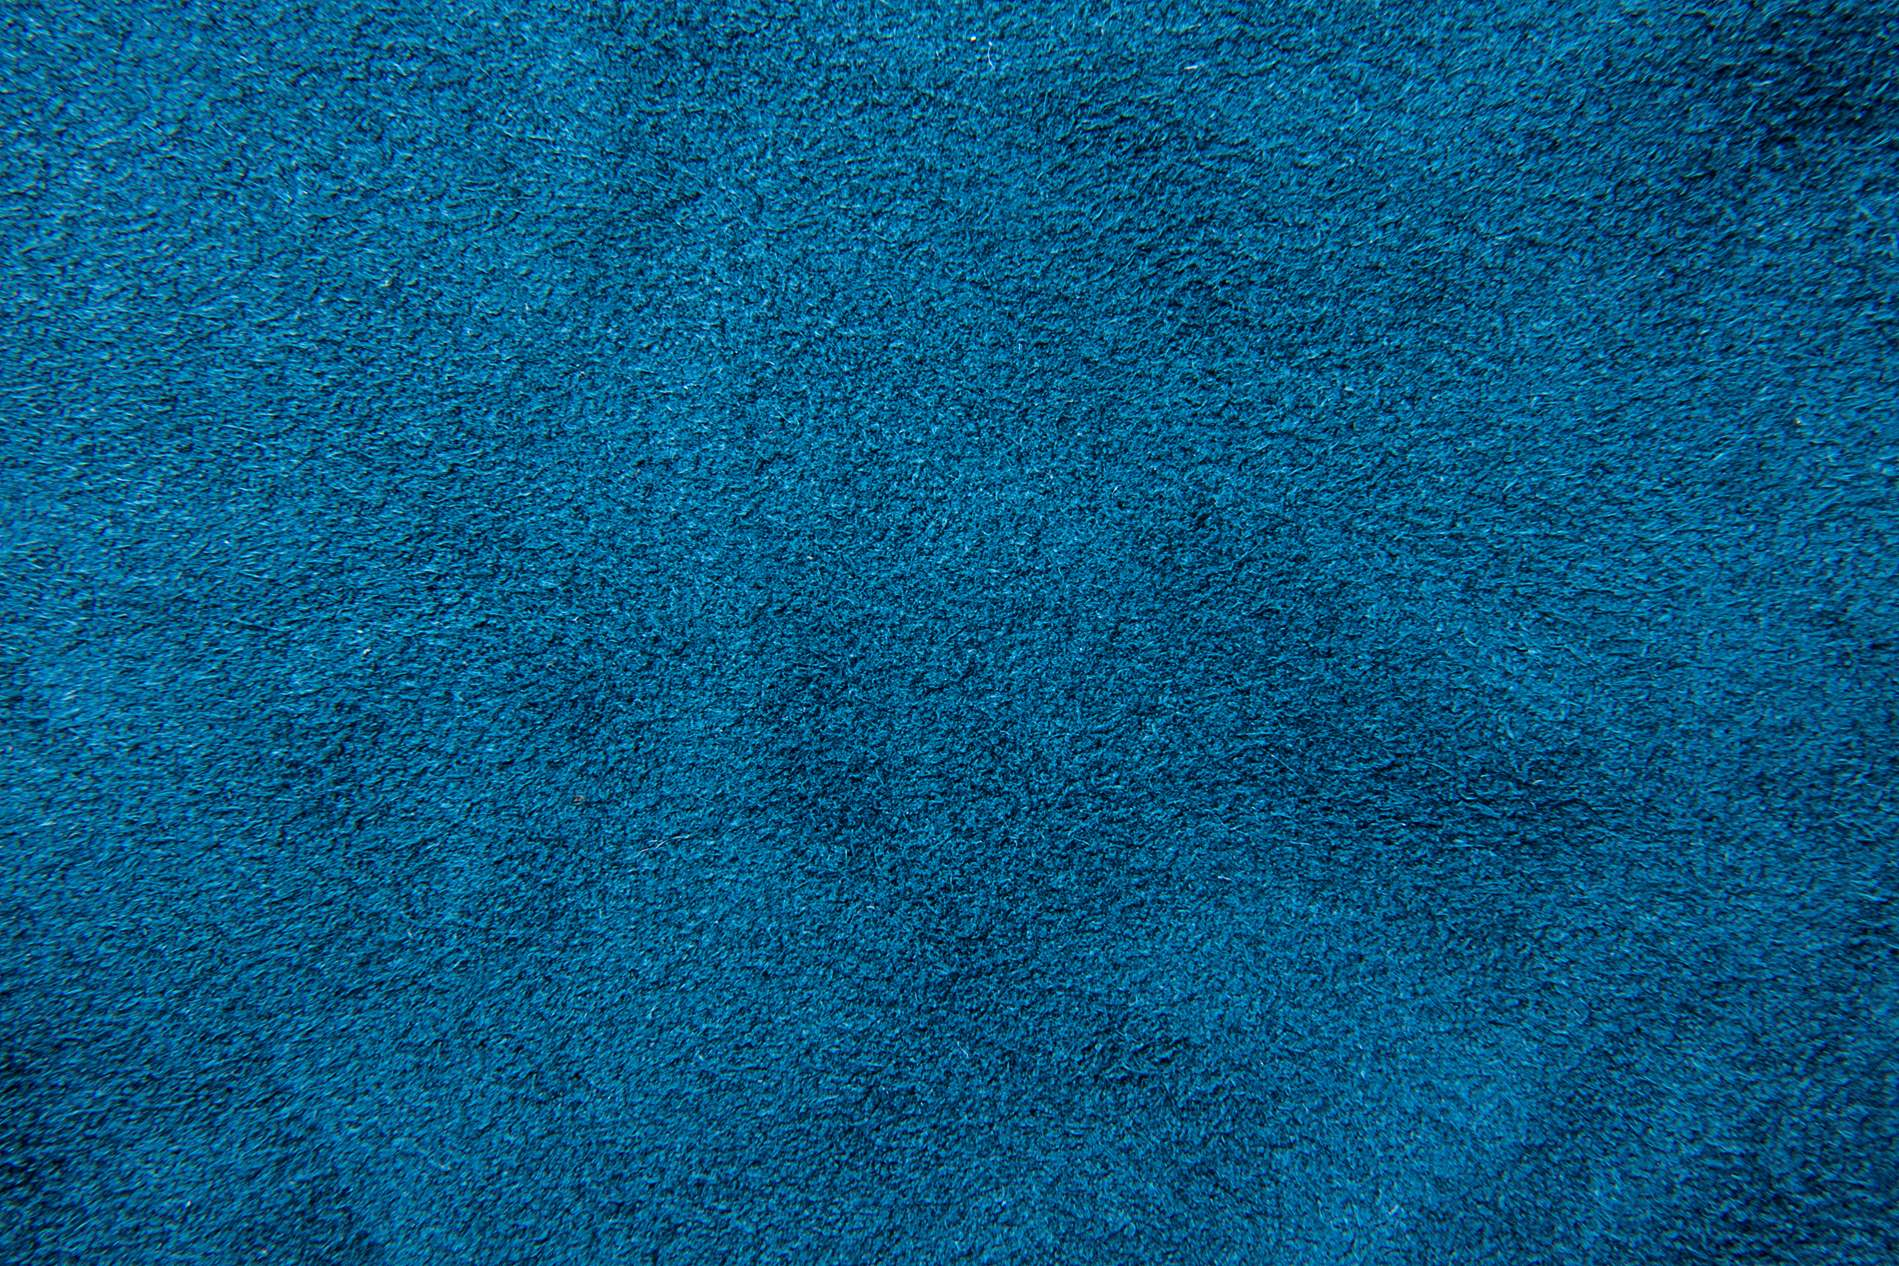 Blue Soft Fabric Cloth Texture Background Photohdx